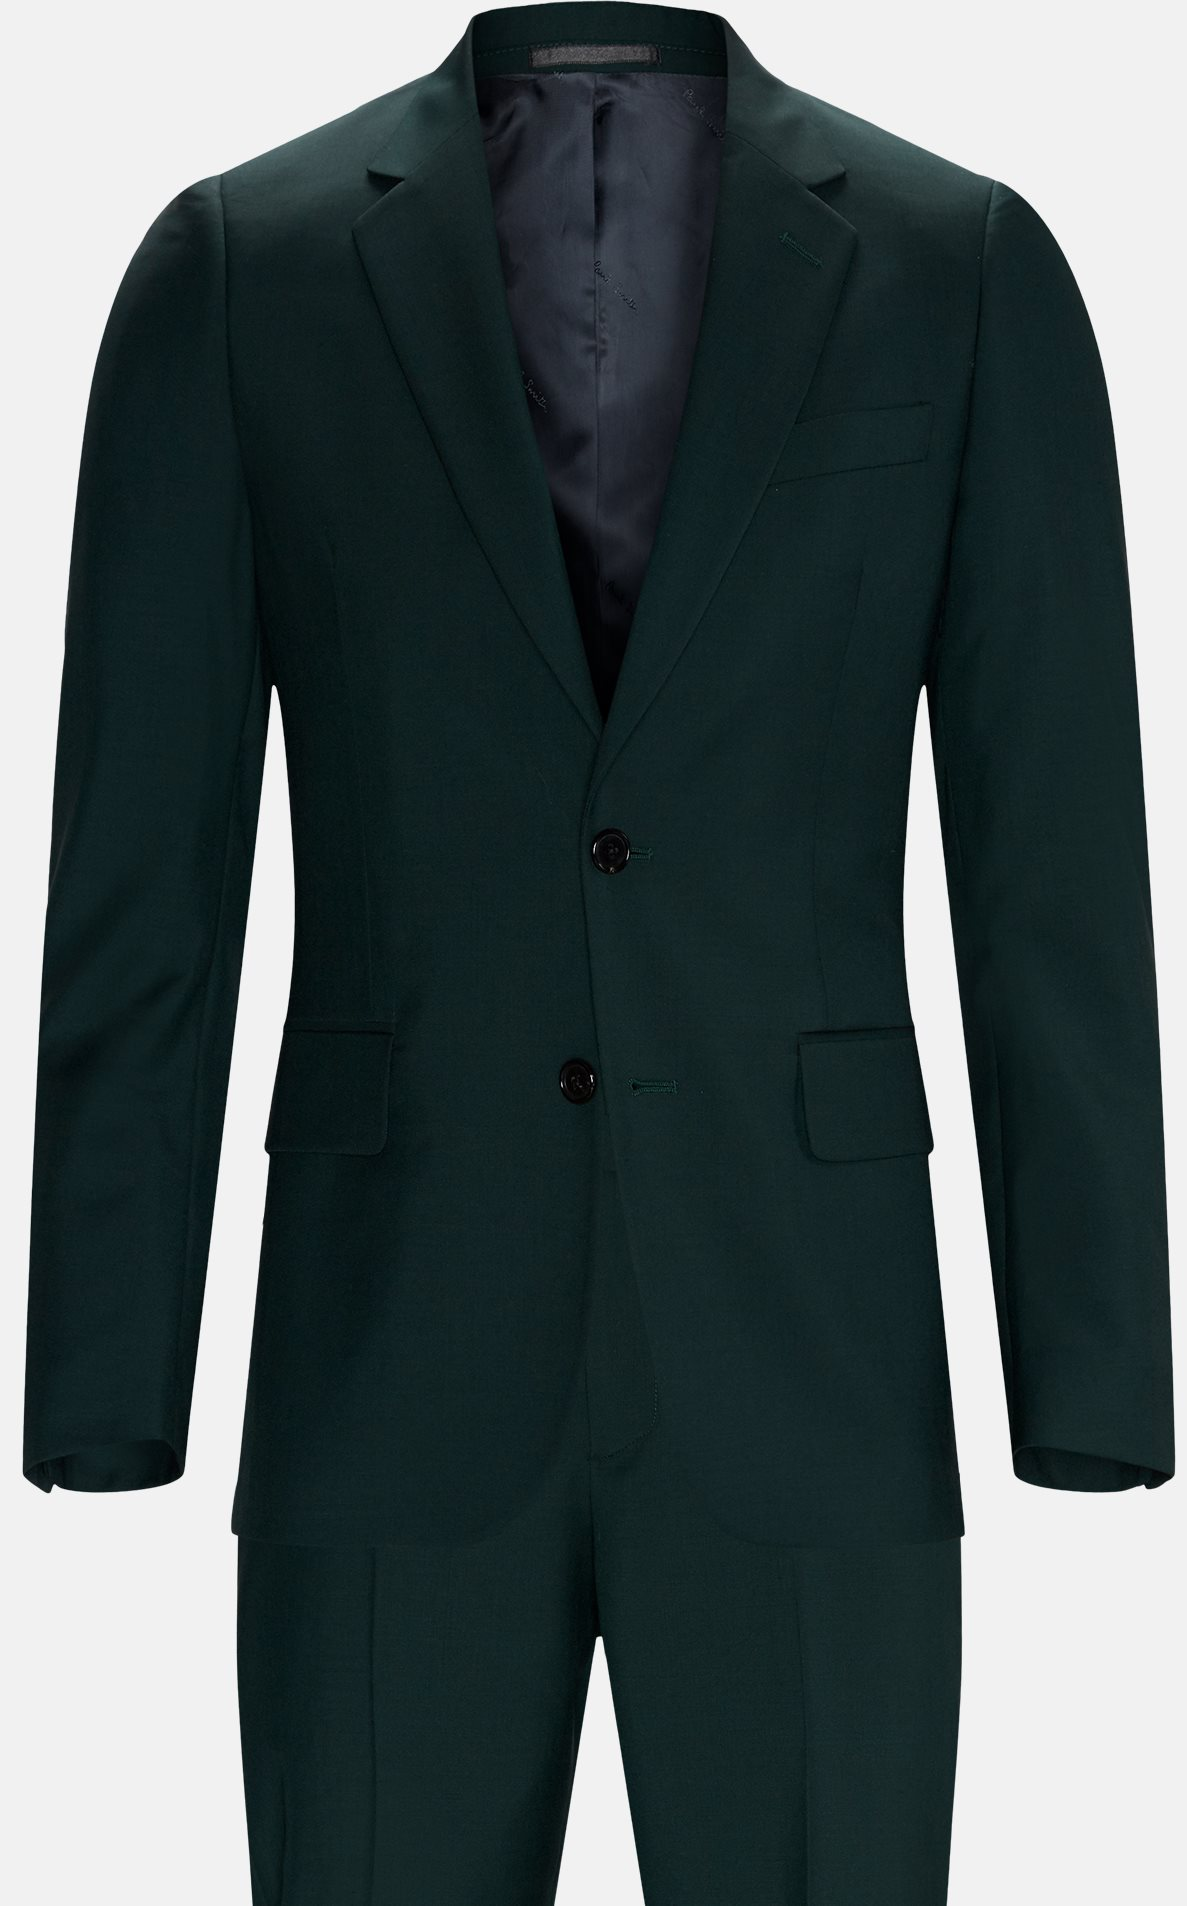 Suits - Slim fit - Green